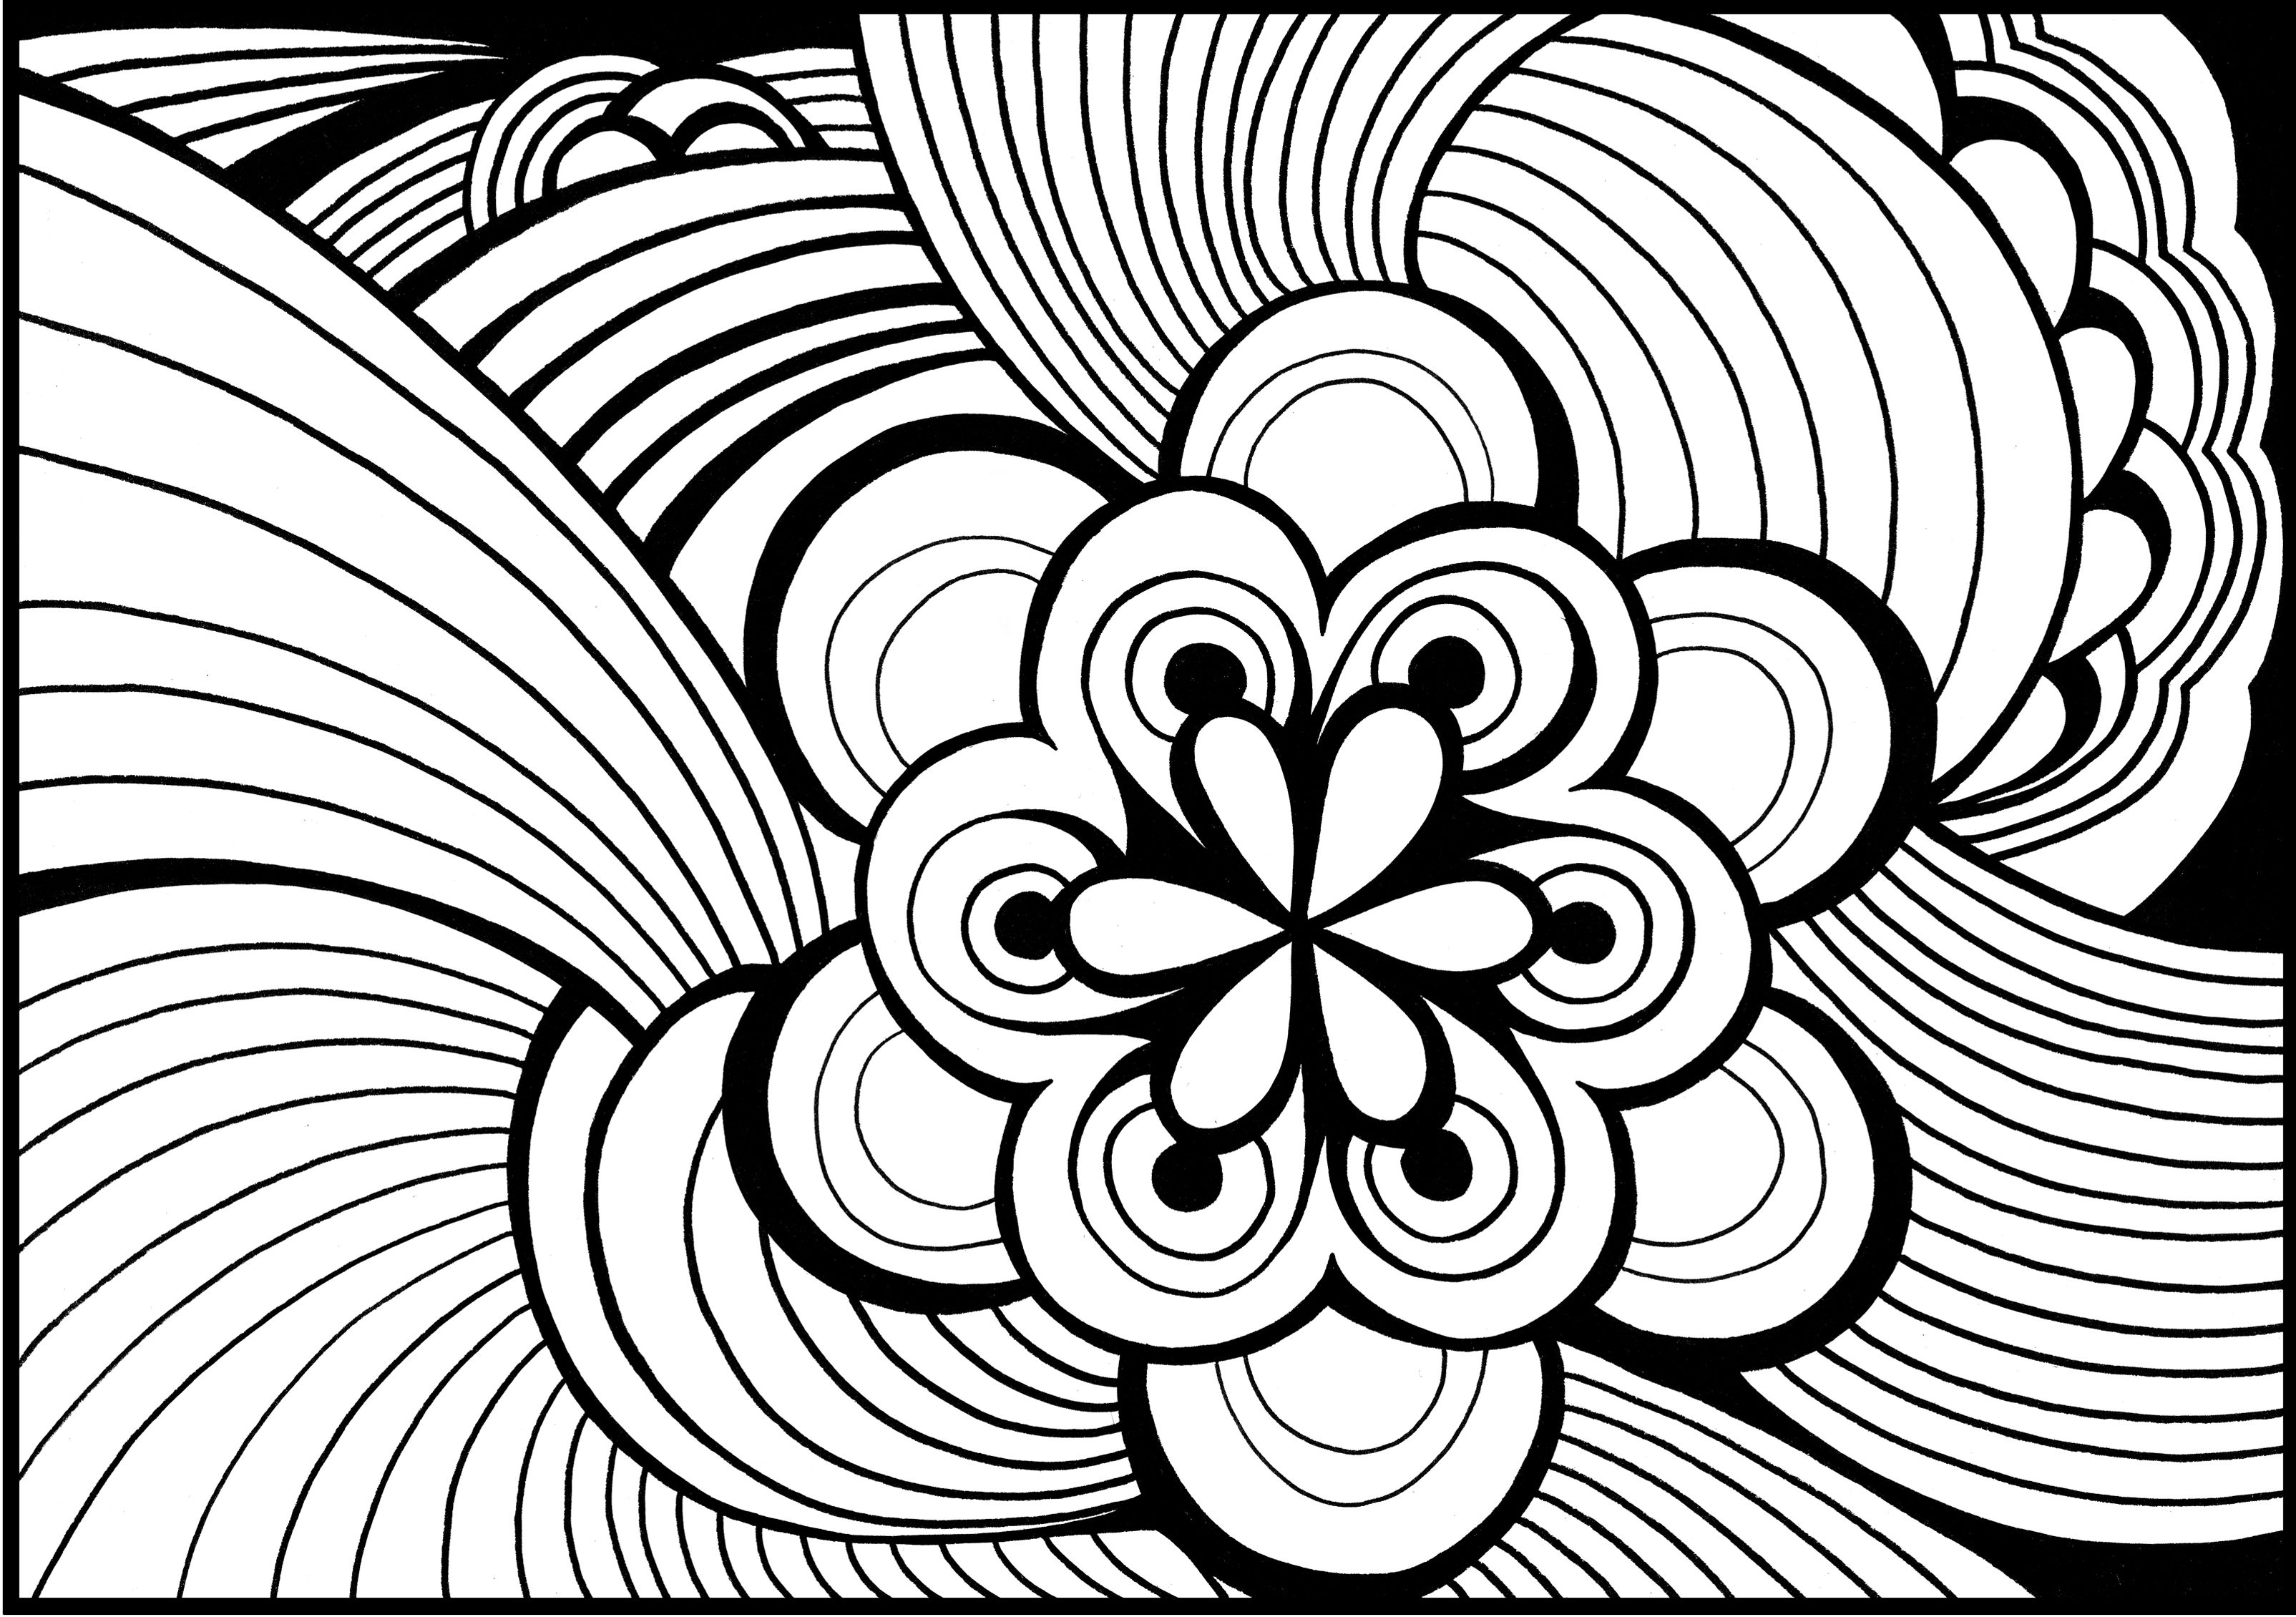 Abstract Adult Colouring Pages 01 e1542234425921